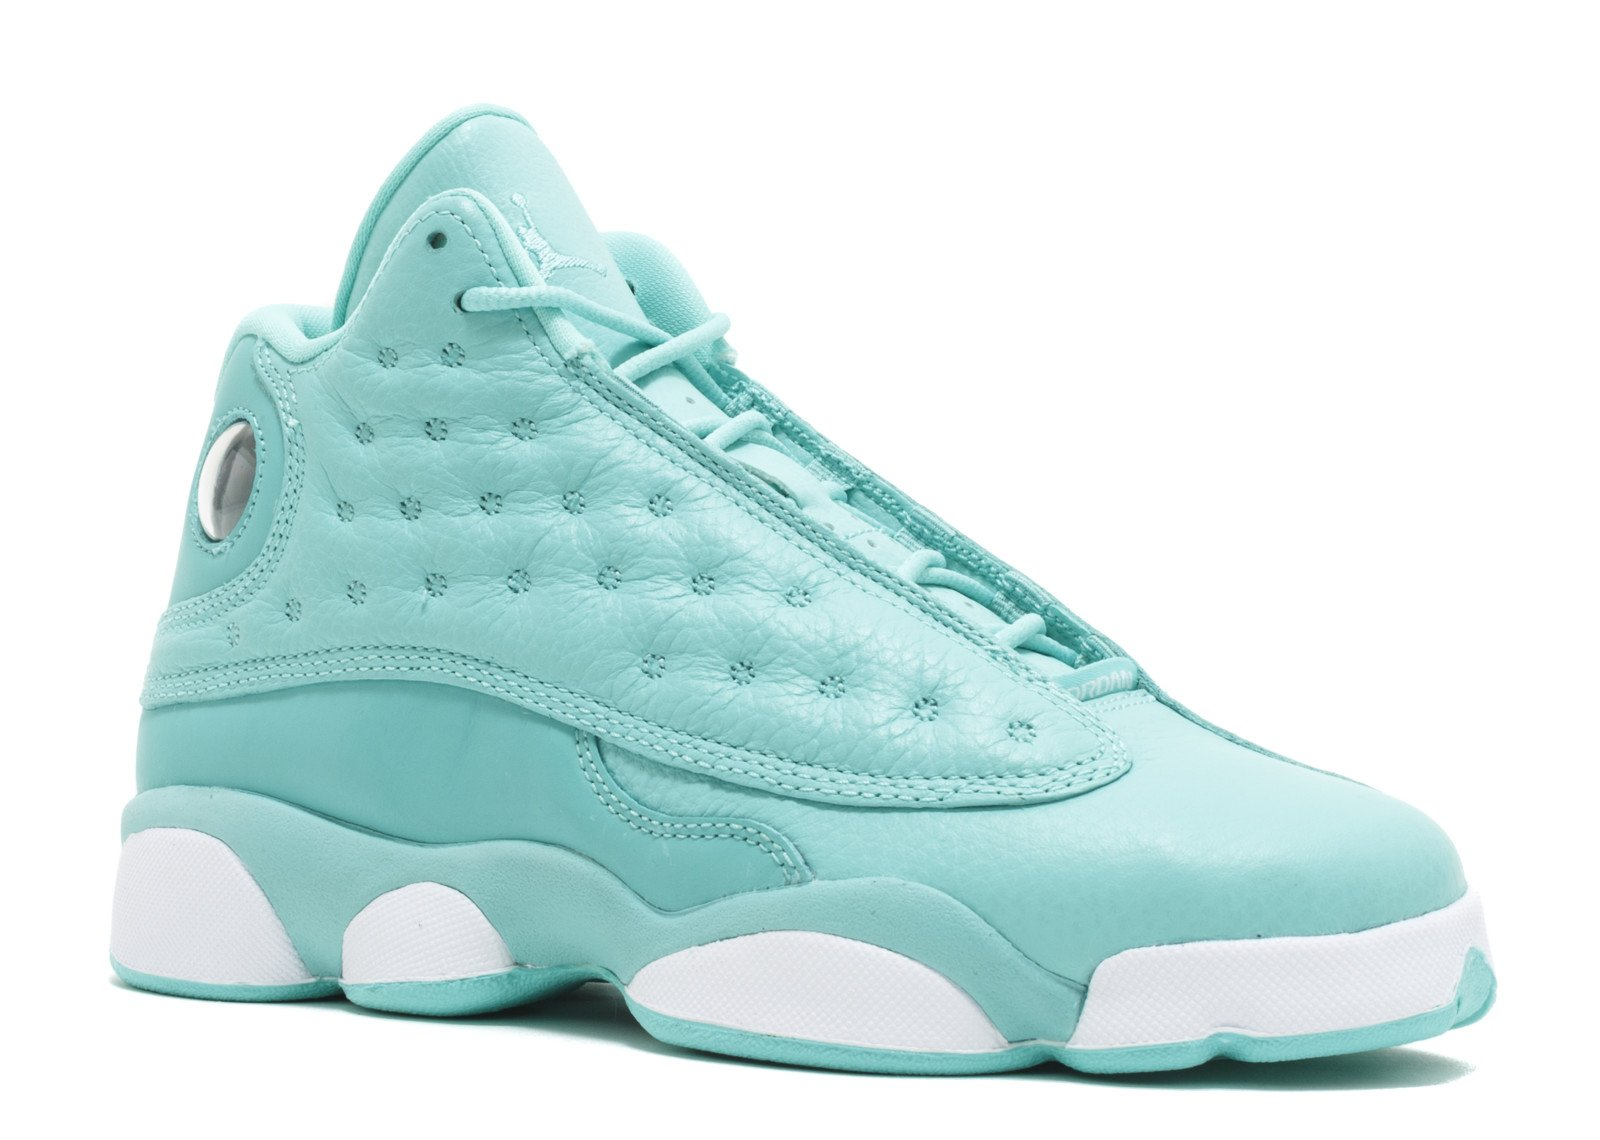 Jordan Kid's Air 13 Retro SNGL DY GG, HYPER TURQUOISE/WHITE, Youth Size 4 by NIKE